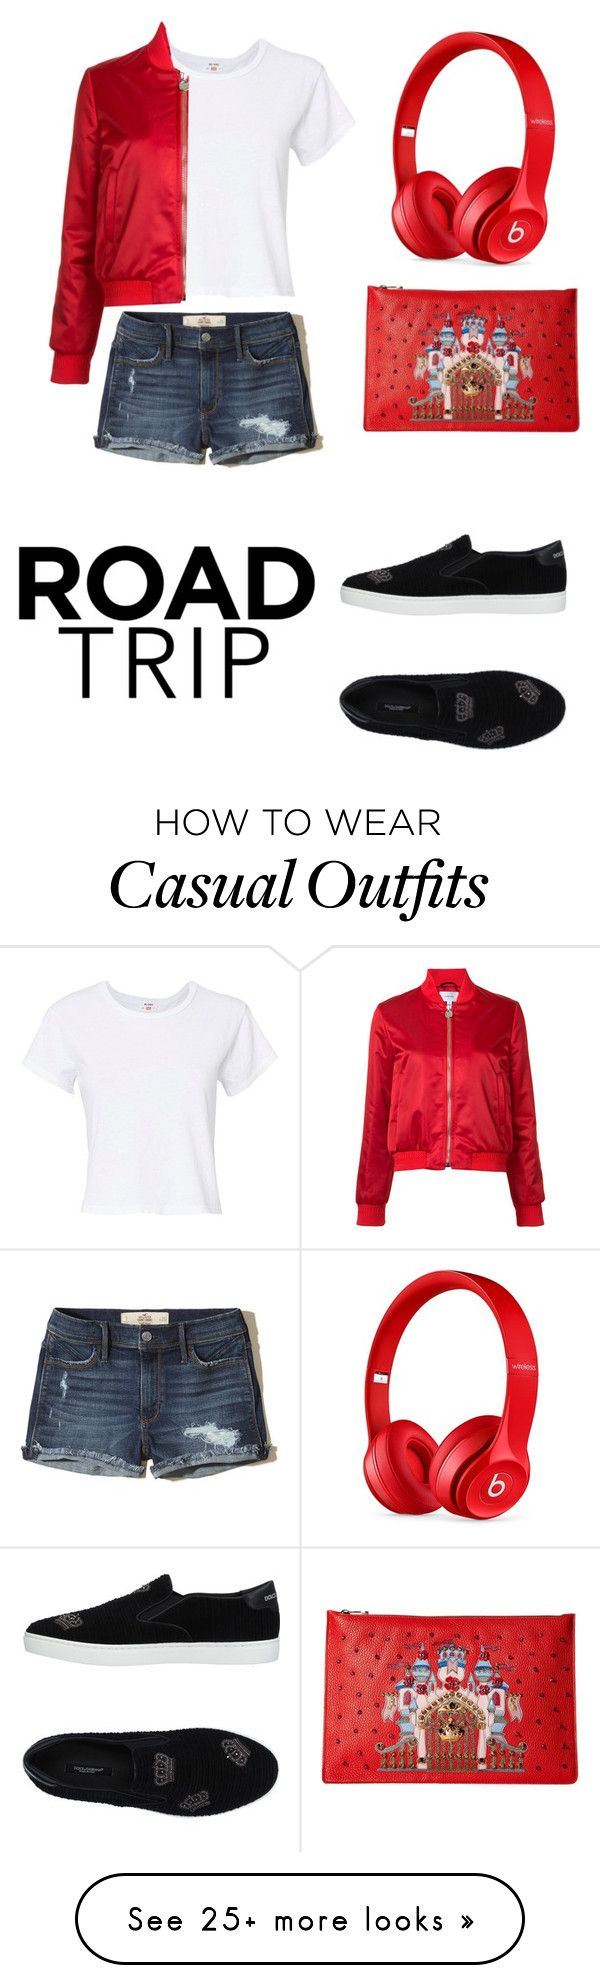 """""""Casual look"""" by fionaheda05 on Polyvore featuring Hollister Co., RE/DONE, Carven, Dolce&Gabbana and Beats by Dr. Dre"""